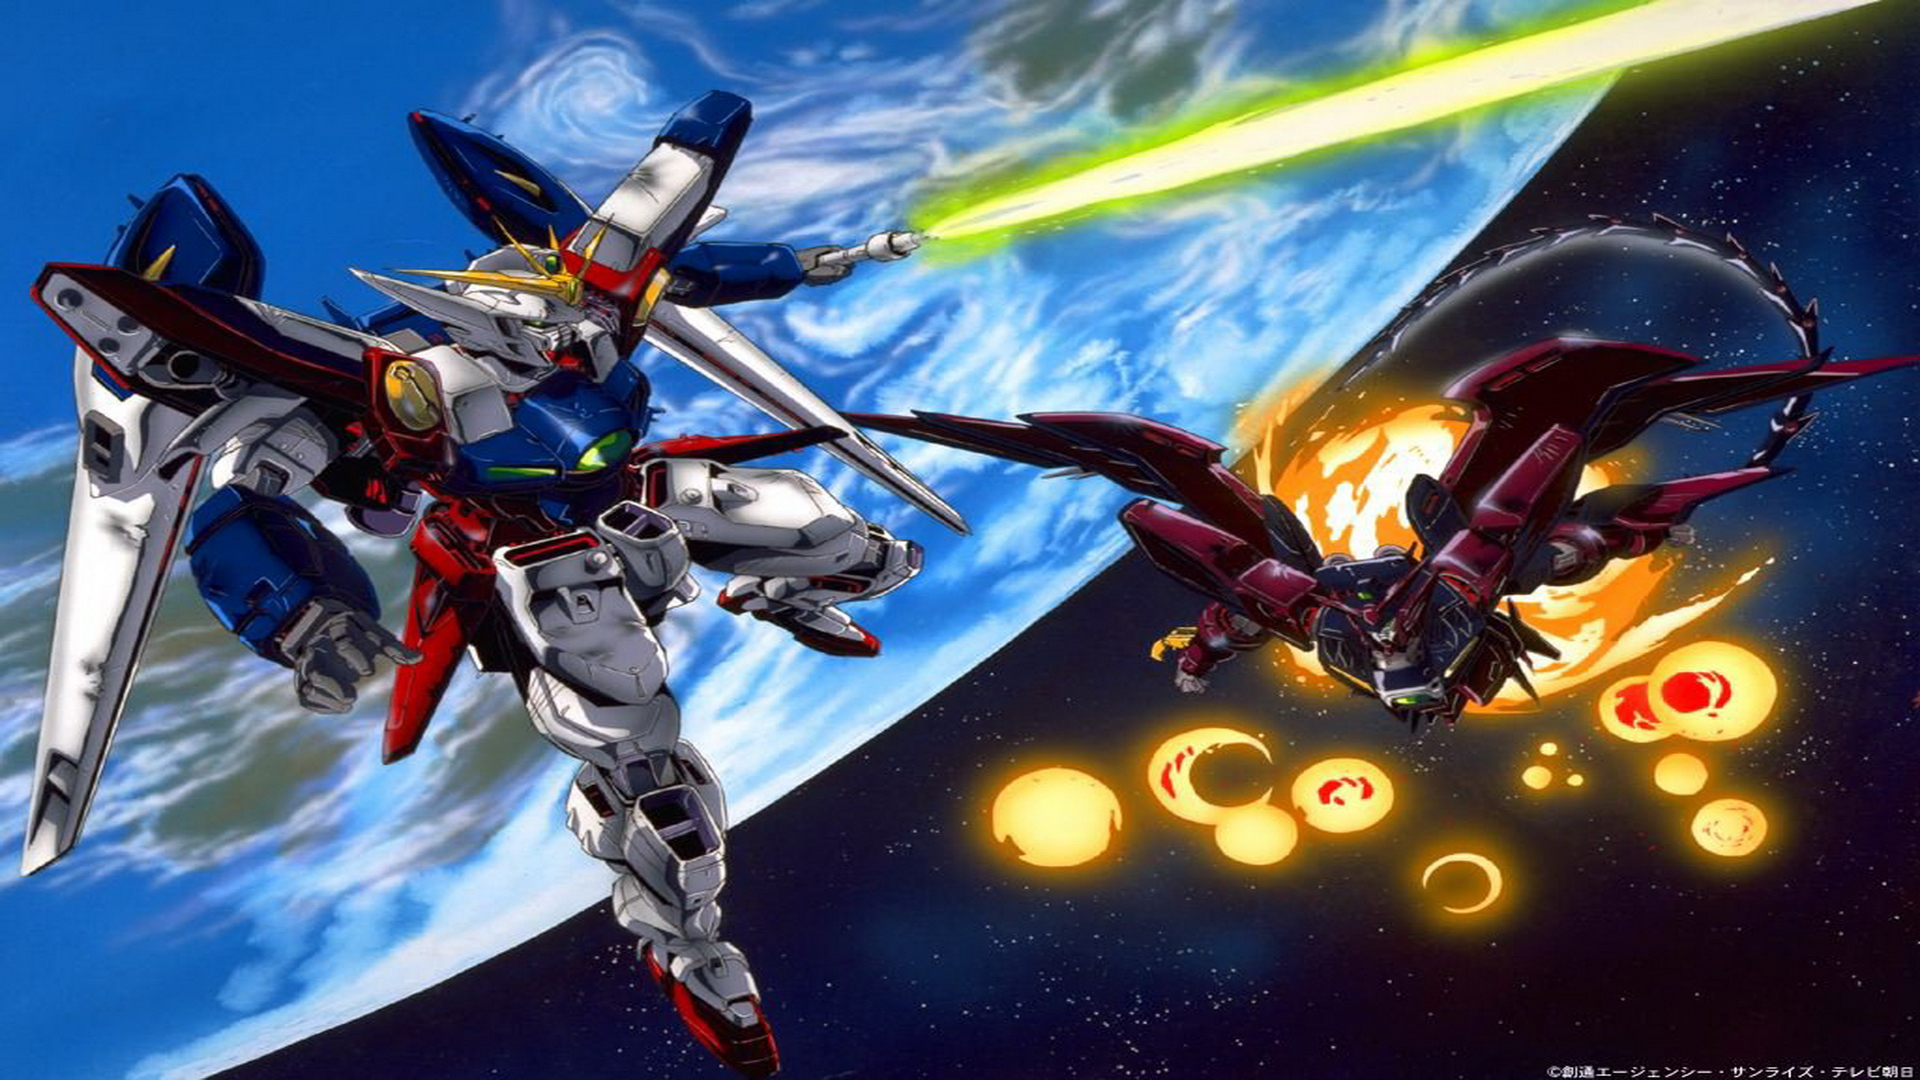 Wallpapers HD Desktop Wallpapers Gundam Wallpapers 14jpg 1920 x 1920x1080